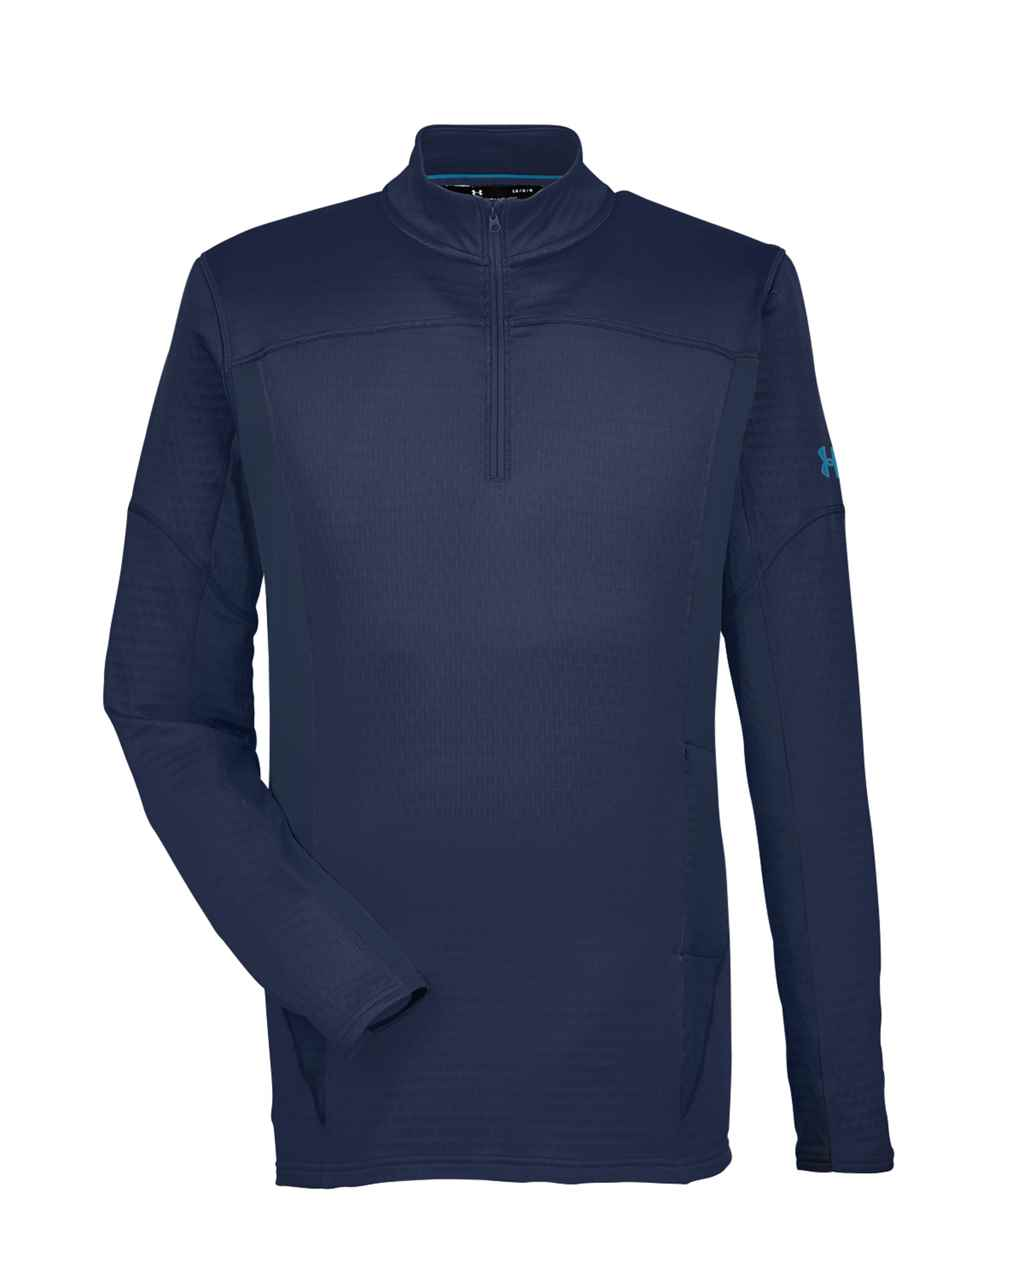 Picture of Under Armour Men's Spectra Quarter-Zip Pullover